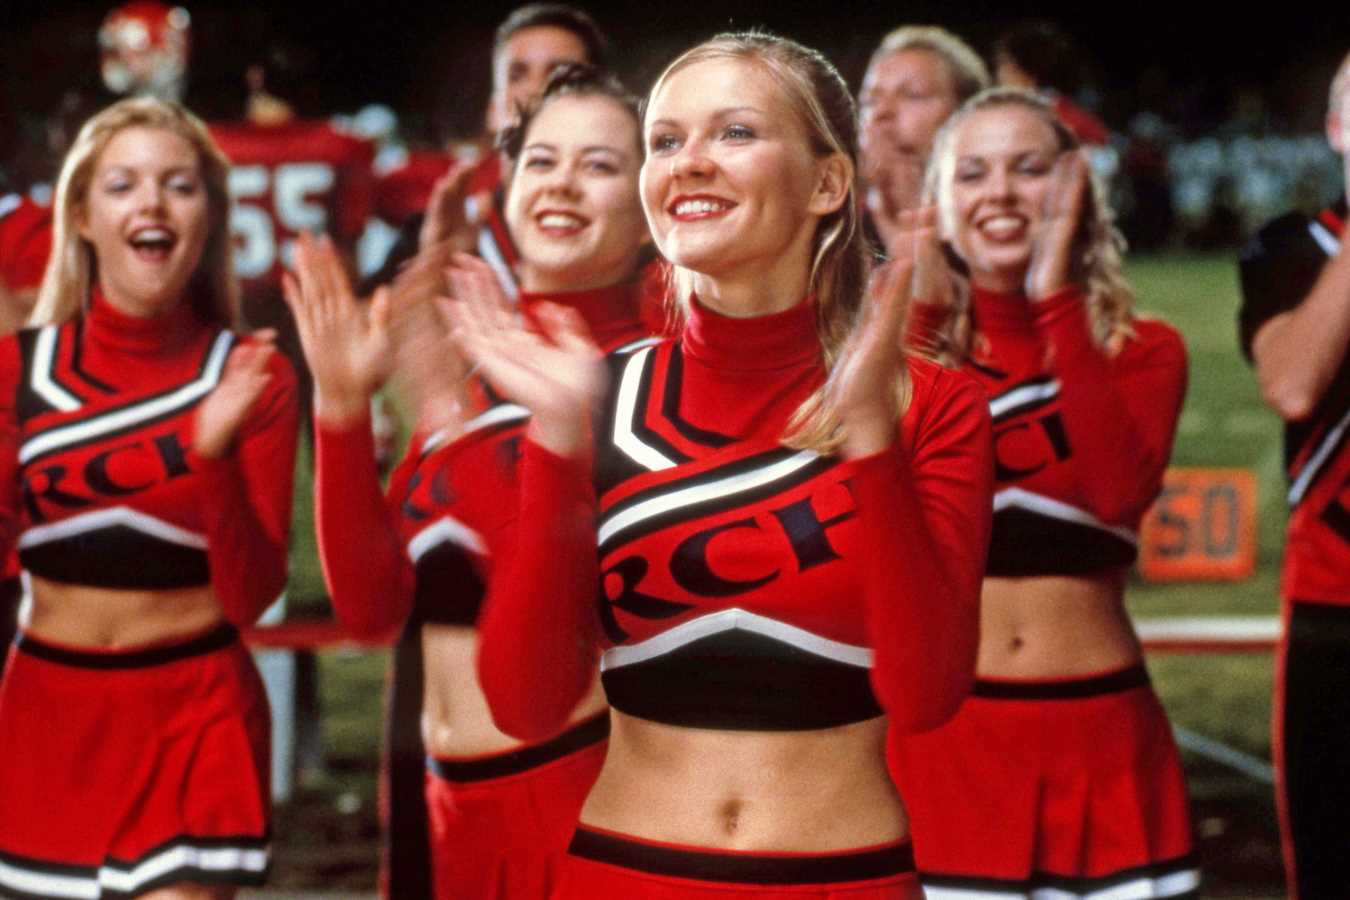 Bring It On 2: Kirsten Dunst tells Kelly Clarkson she would do it